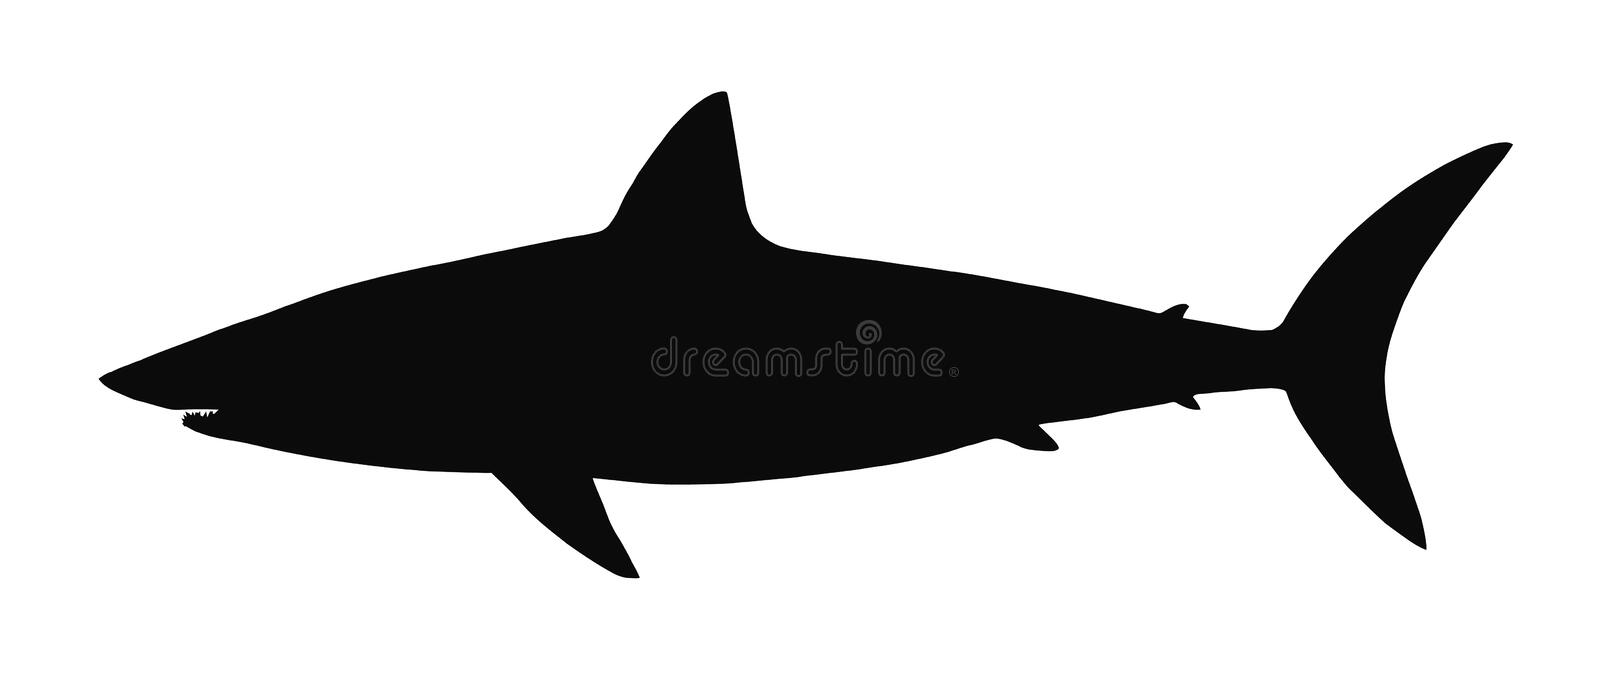 Silhouette de vecteur de requin. illustration de vecteur